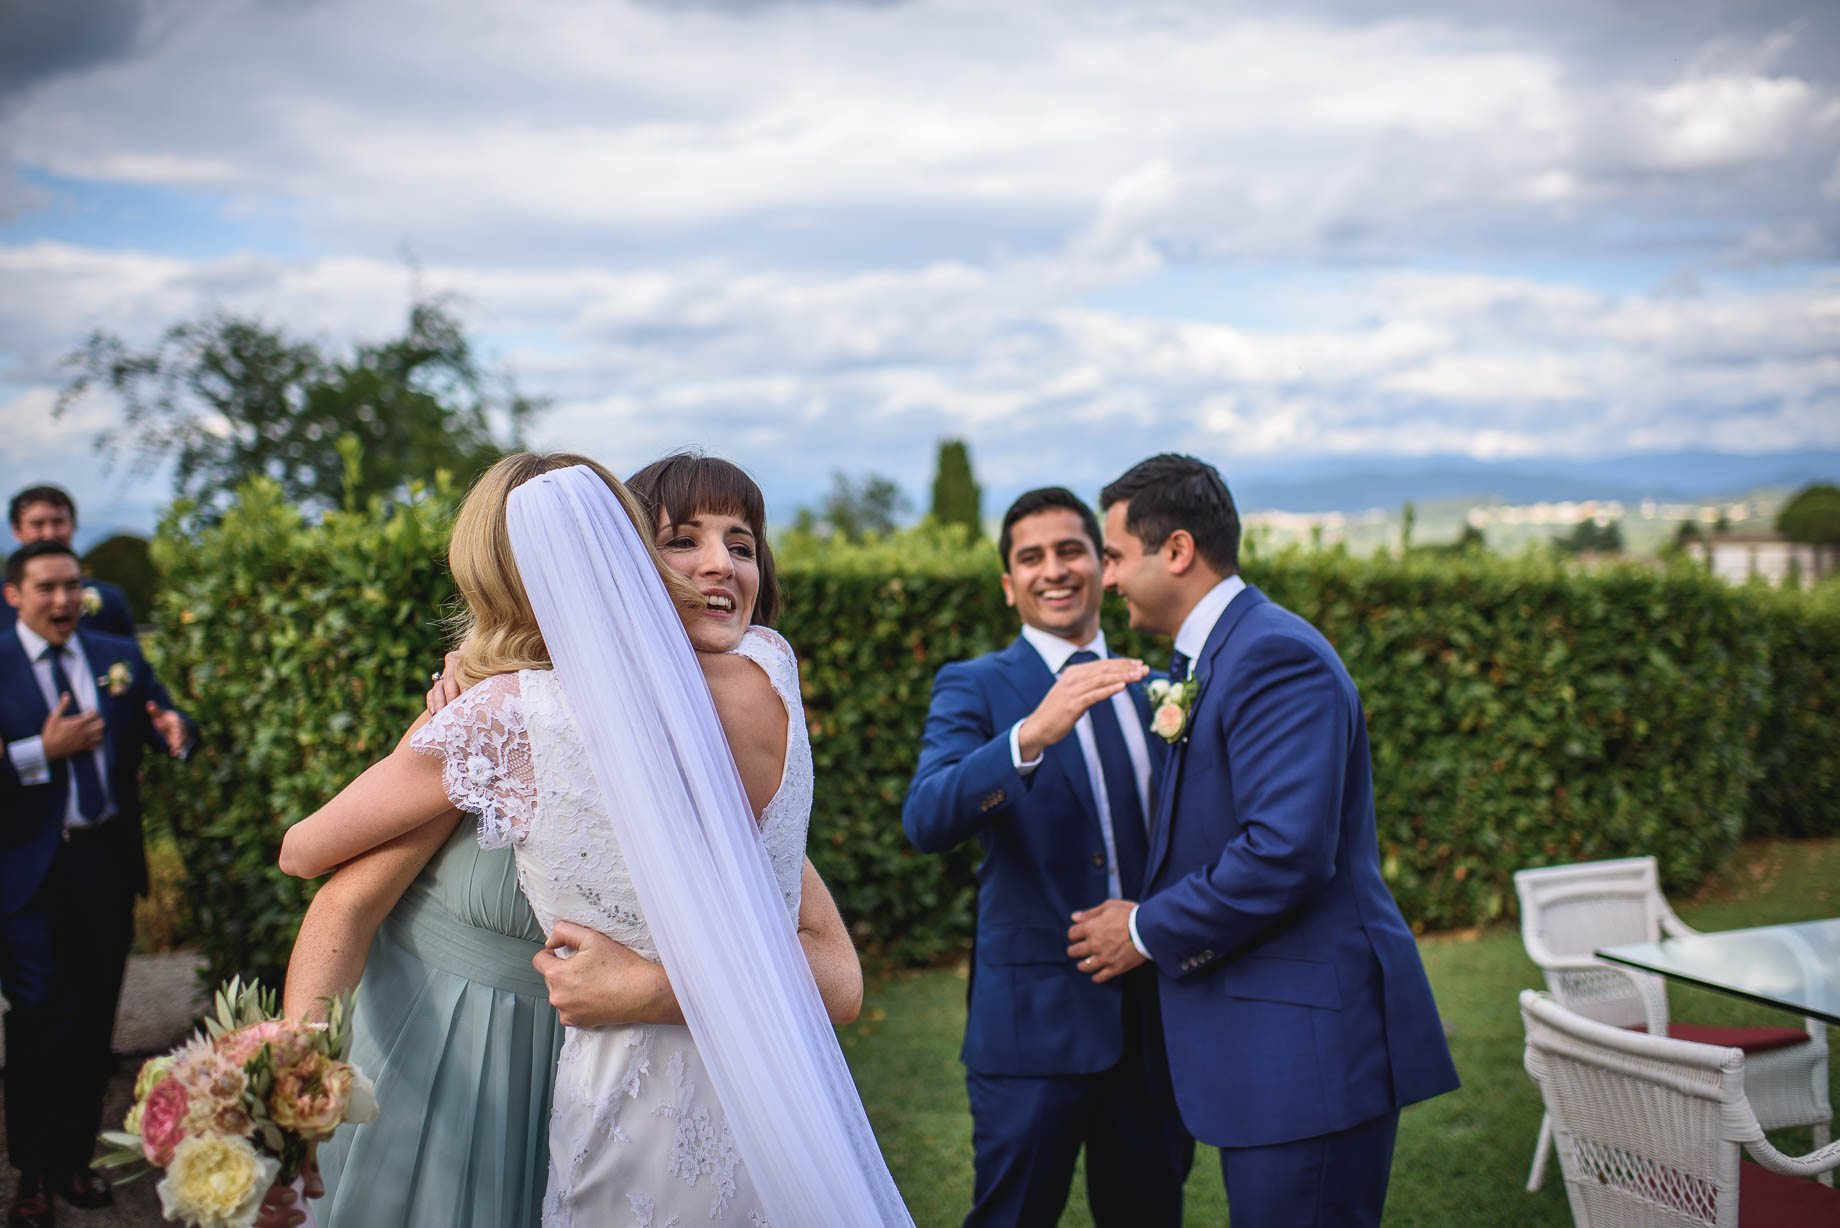 Tuscany wedding photography - Roisin and Moubin - Guy Collier Photography (117 of 251)